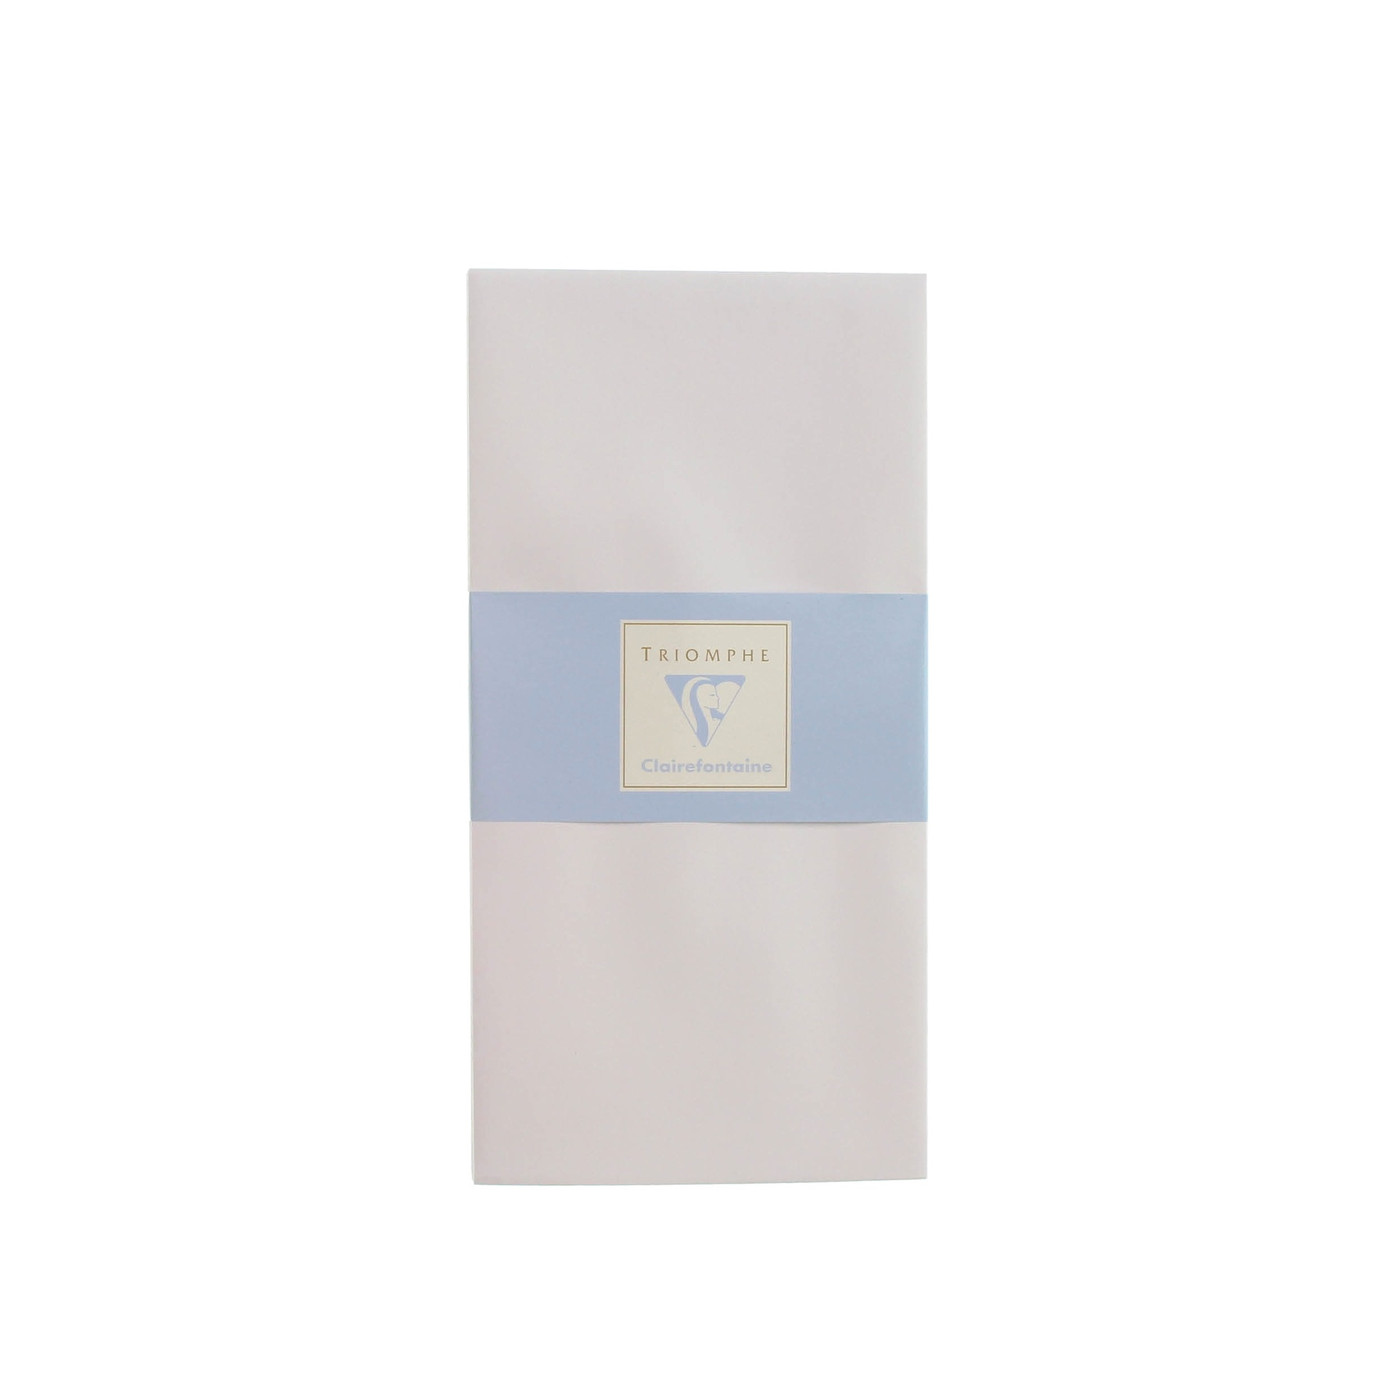 Clairefontaine Triomphe envelopes - DL